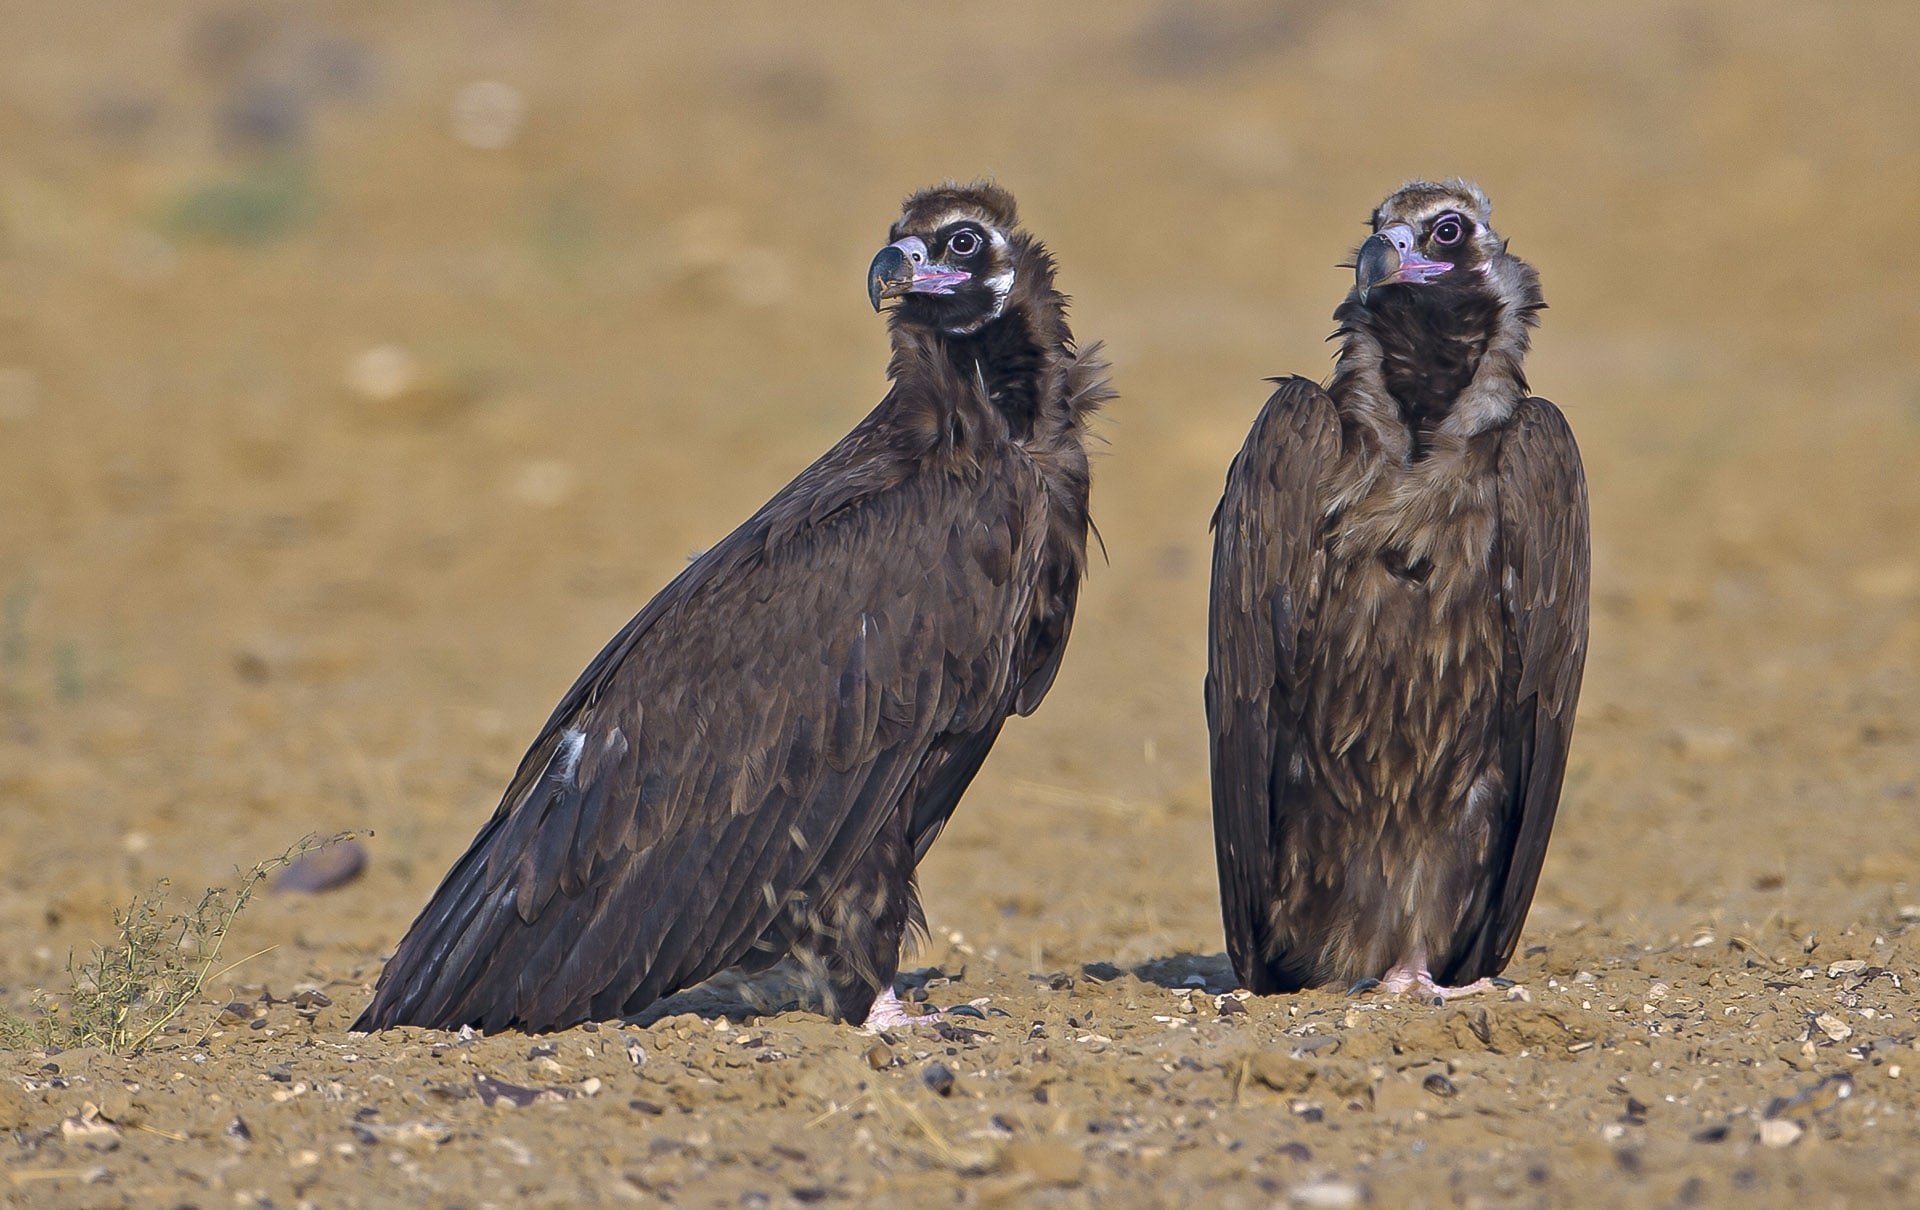 """Vultures, especially dark figures like the cinereous vulture (Aegypius monachus), get a bad rap for scavenging on carrion, but they perform crucial ecosystem services by keeping the nutrient cycle going and minimising the chance of disease from rotting meat. """"Cinereous vultures do not breed on the Indian subcontinent,"""" explains Dr Rahmani. """"They breed in Europe, Russia, Central Asia, Mongolia, and Northern China, with adult birds migrating to southern climes, sometimes within Europe."""" The juveniles however, migrate longer distances """"so most of the cinereous vultures that we see in India are juveniles or subadults that are darker than the adults"""". Photo: Dhritiman Mukherjee"""